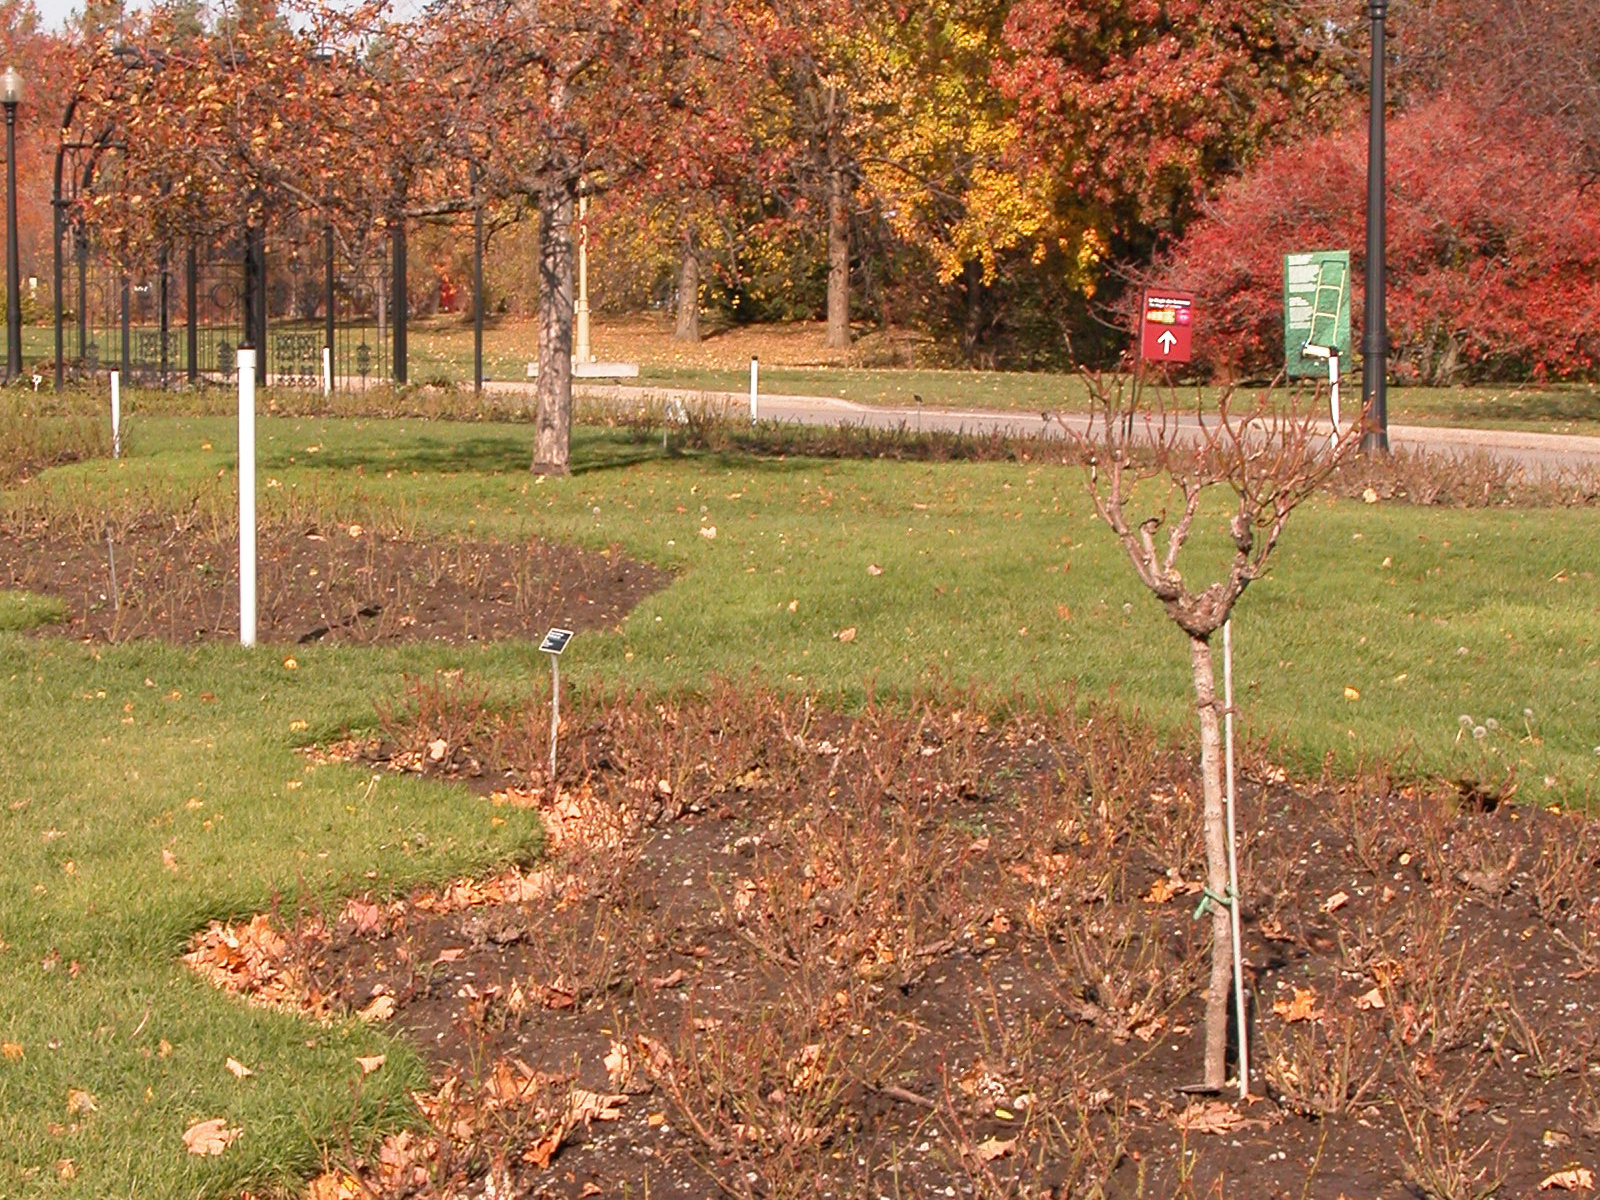 Mulching Staking Pruning And Fertilizing Space For Life